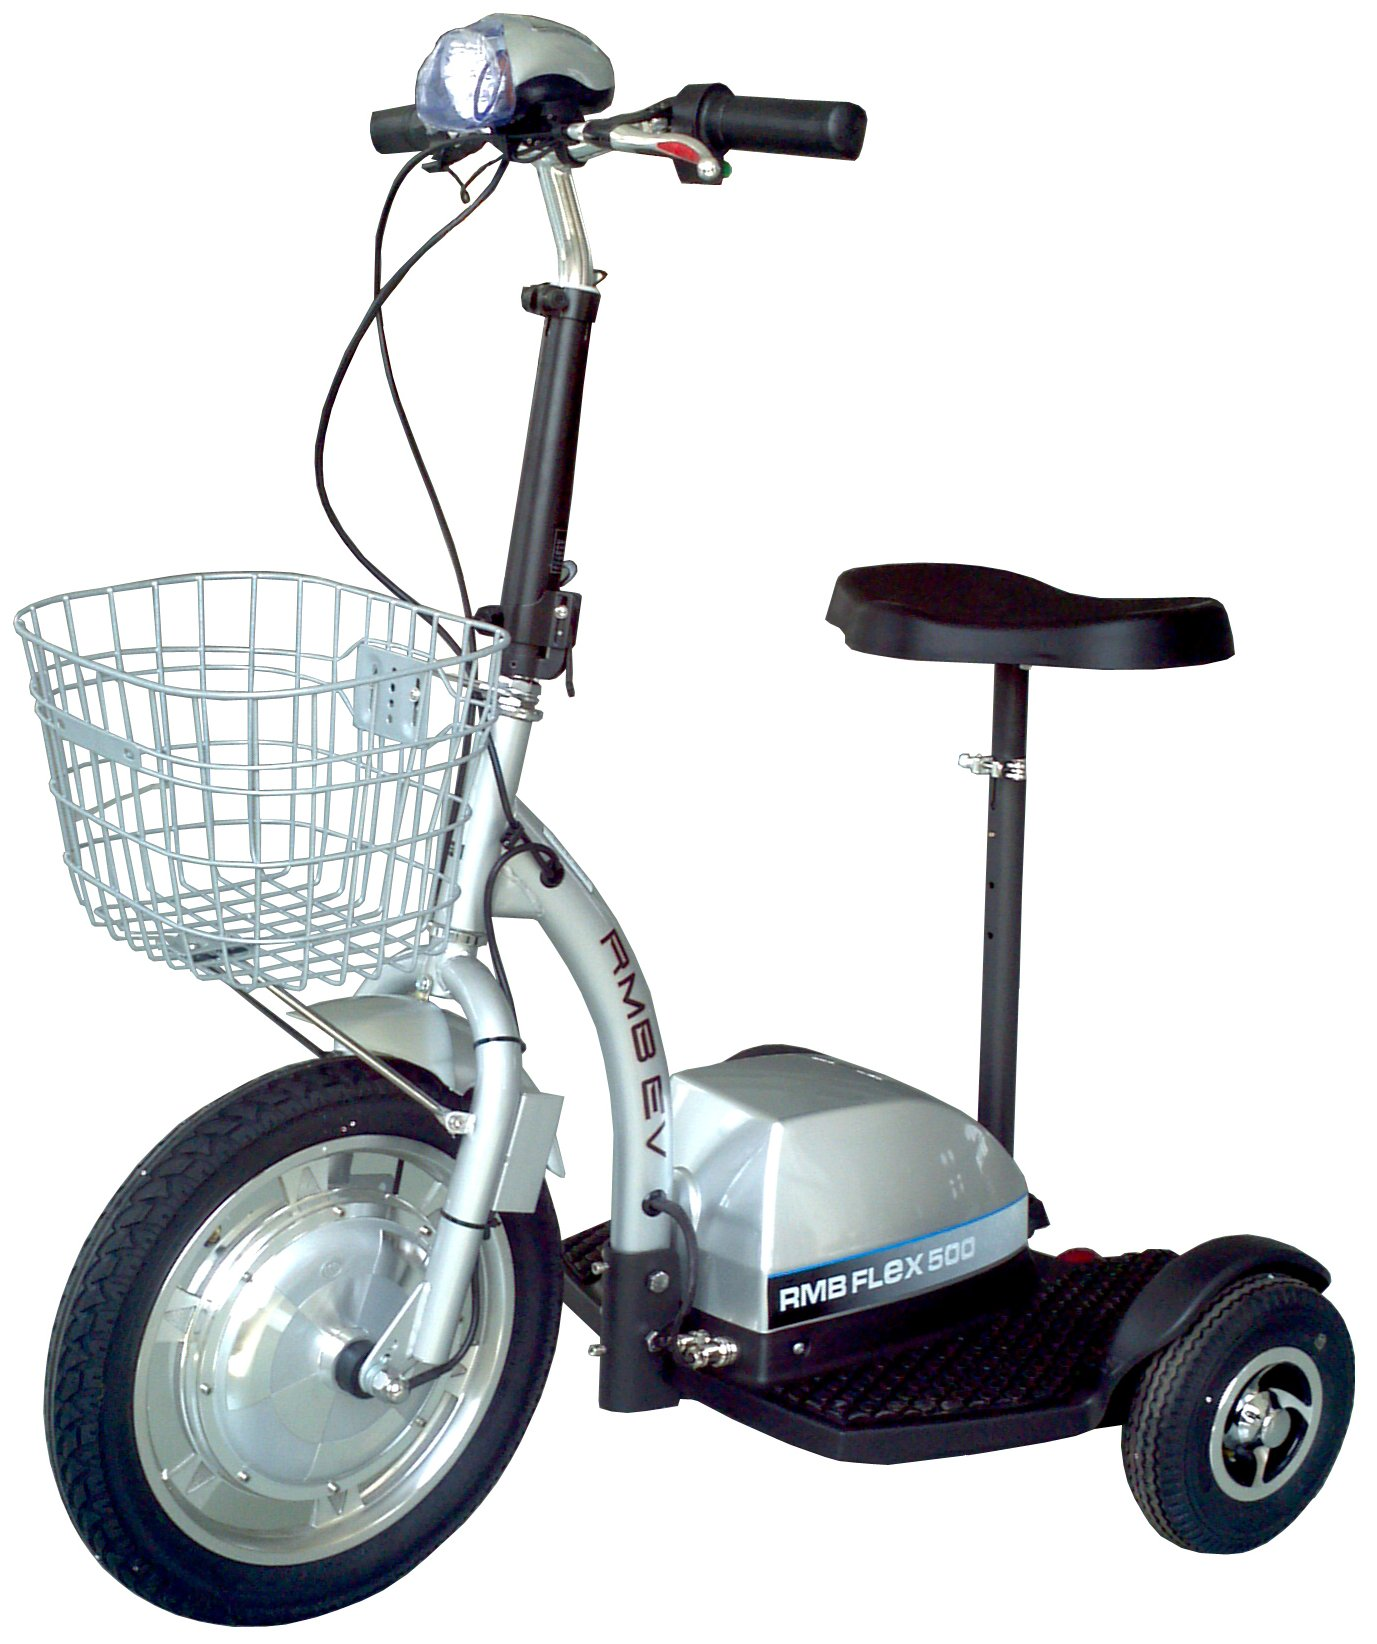 RMB Flex 48v 500W Personal Transportation 3 wheel Electric Scooter